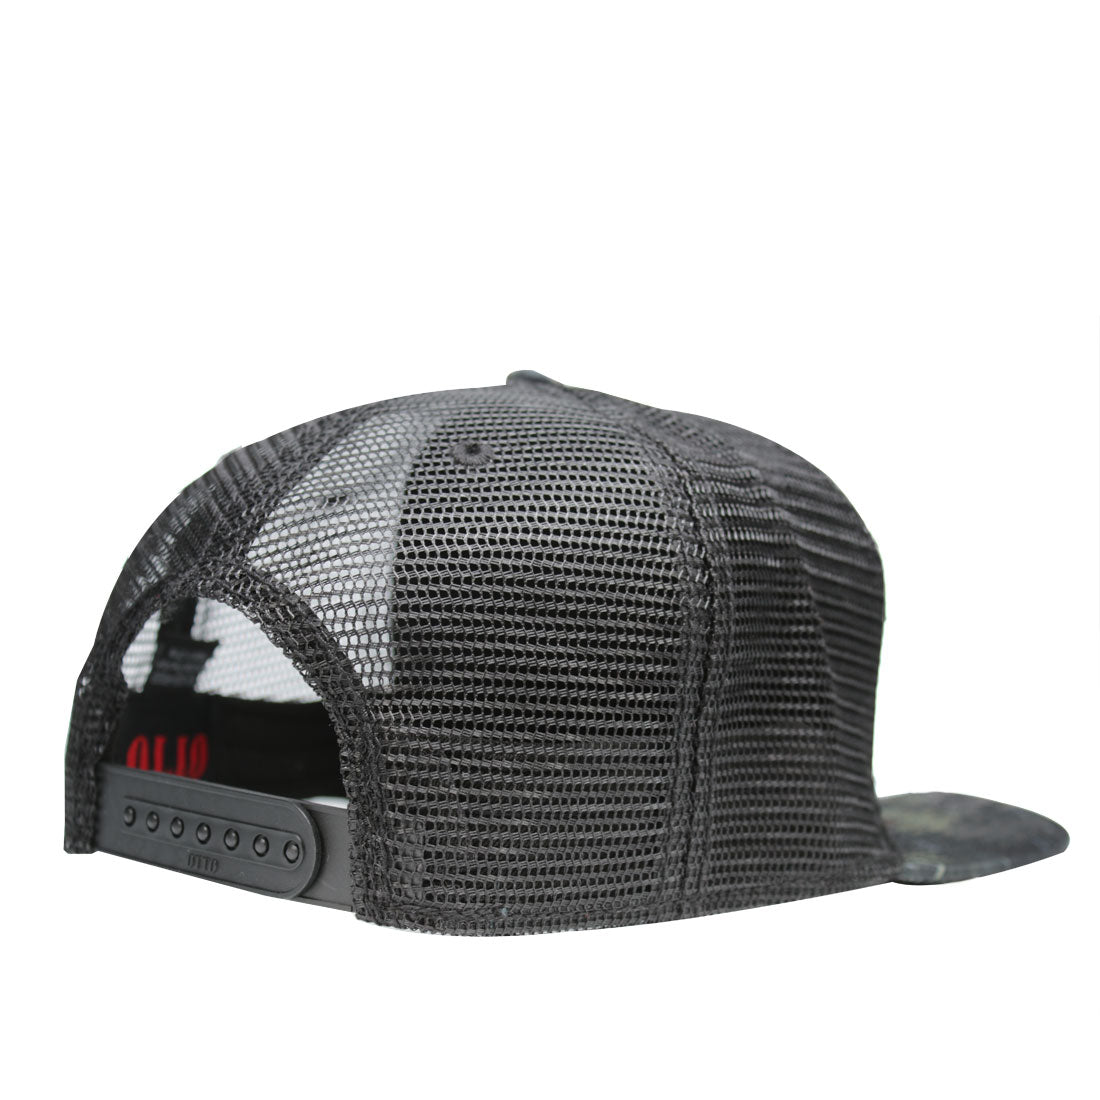 Range Otto Cap Snapback Hat in Camouflage